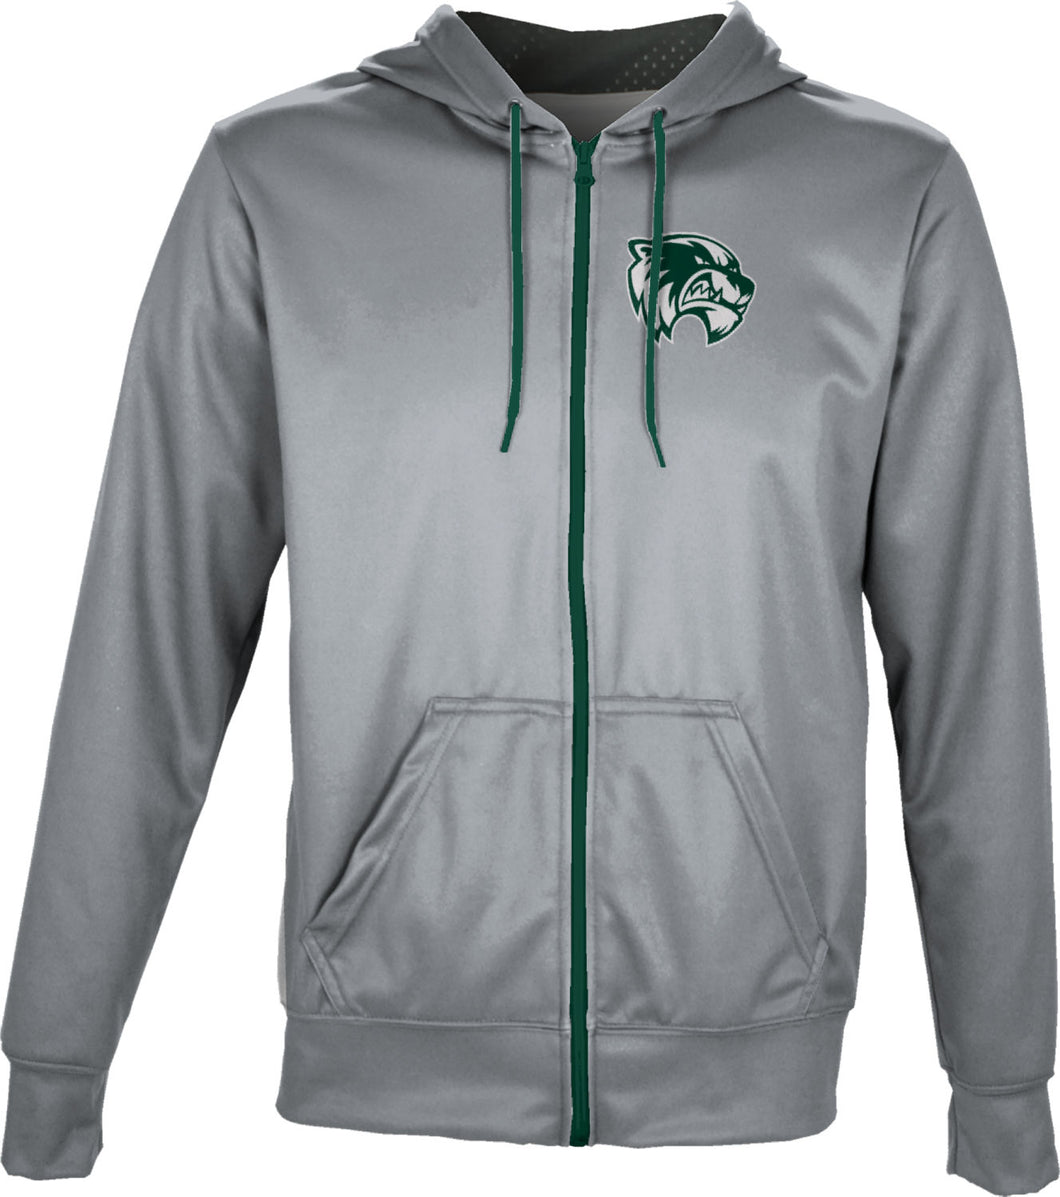 Utah Valley University: Boys' Full Zip Hoodie - Second Skin